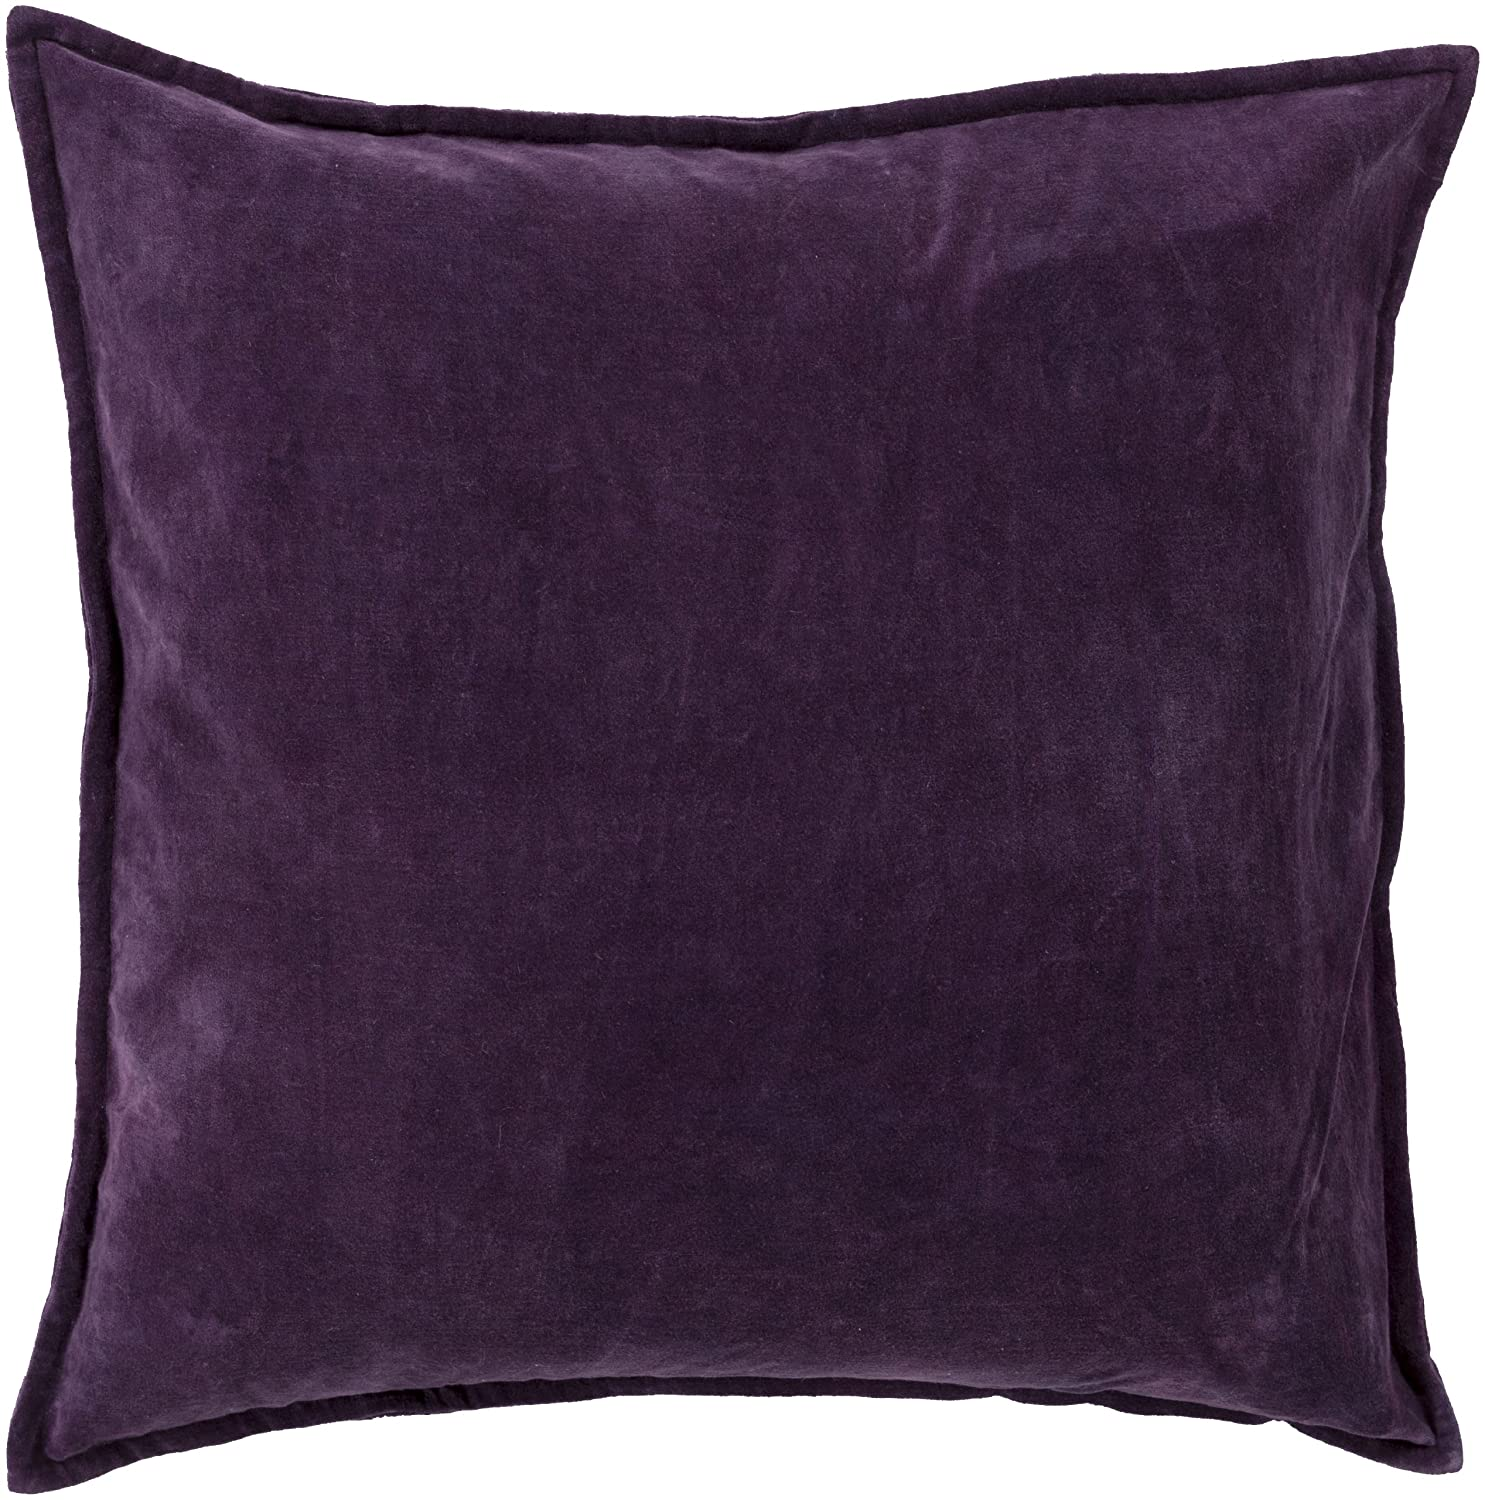 Surya CV006-1818P Synthetic Fill Pillow, 18 by 18-Inch, Eggplant